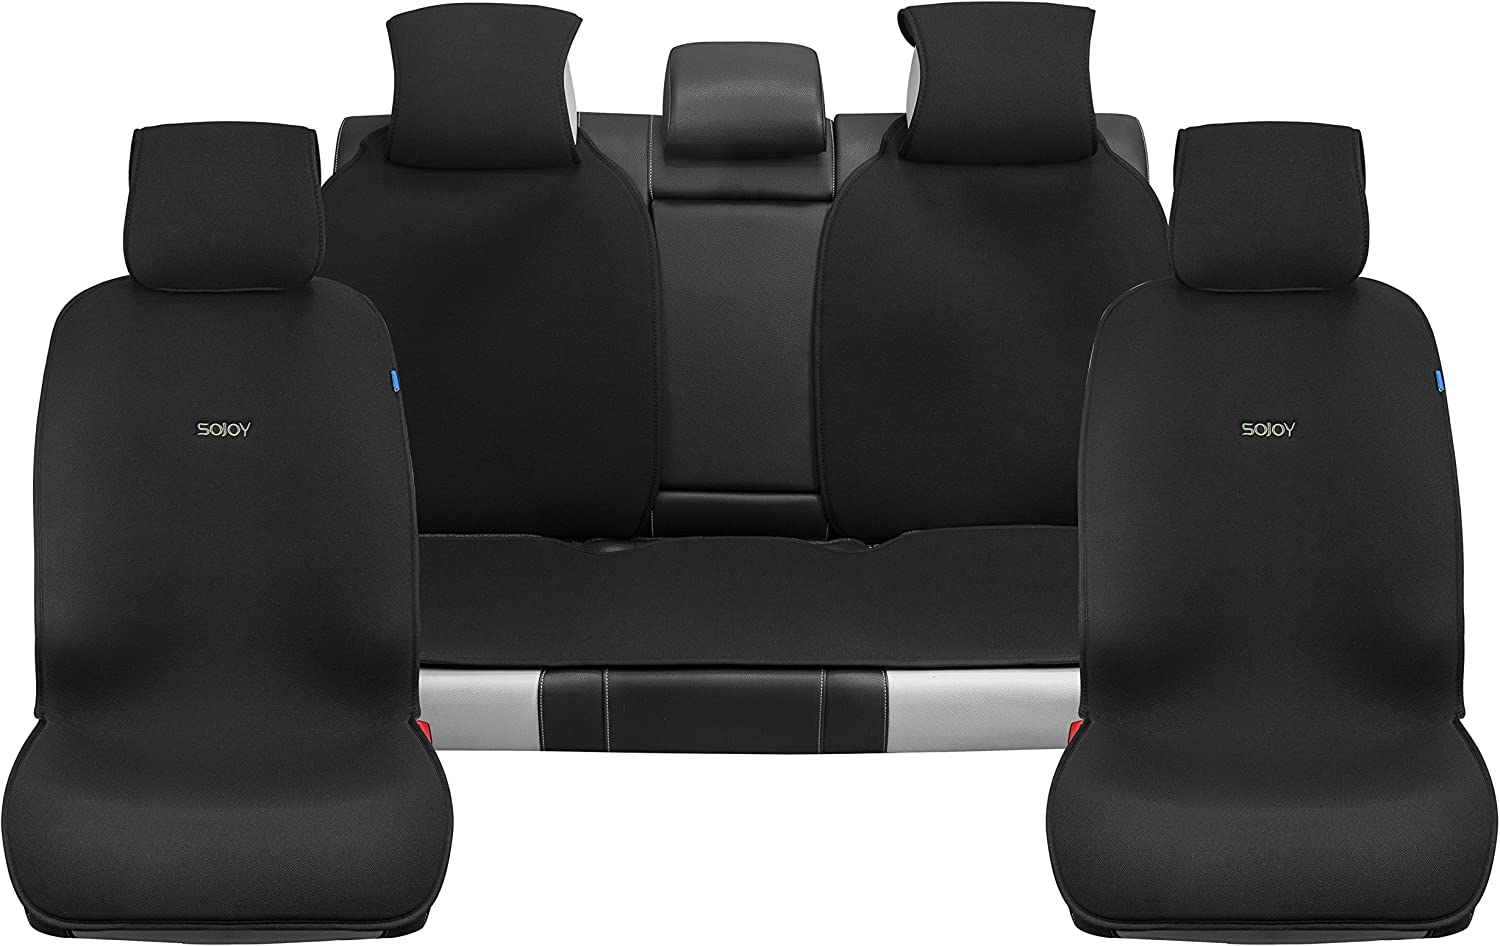 Sojoy Universal Four Seasons Full Set of Car Seat Cover and Cushions Classic Black